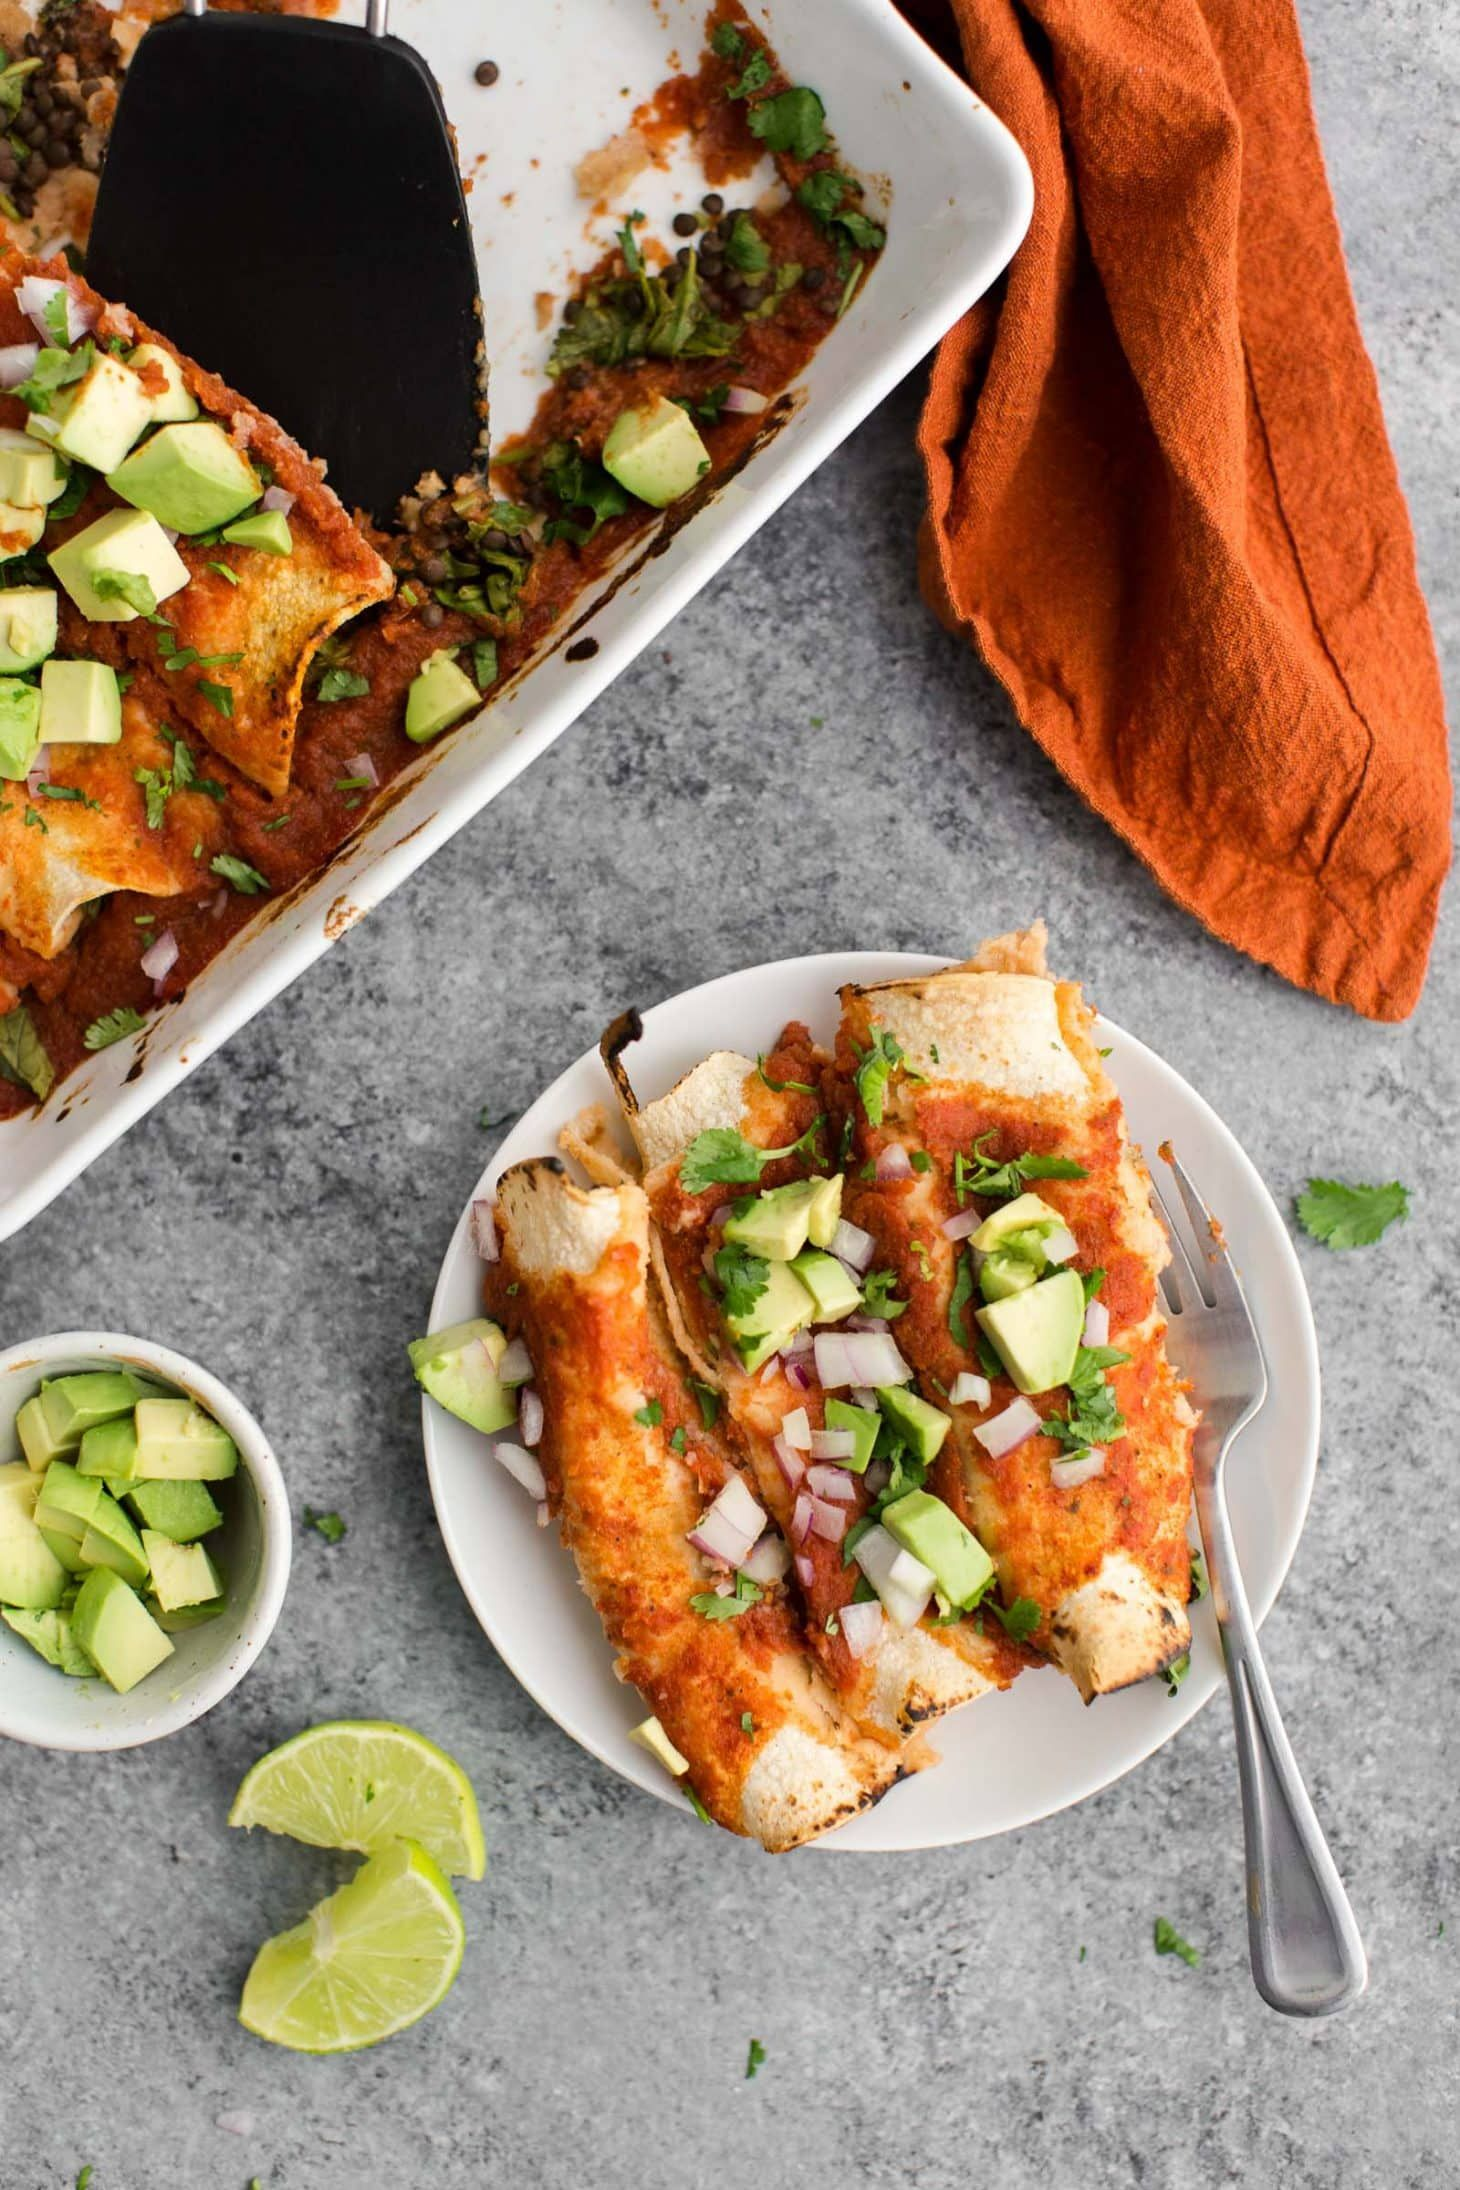 These easy spinach enchiladas are naturally vegan and gluten-free that include a recipe for a perfect, all-season, homemade enchilada sauce.